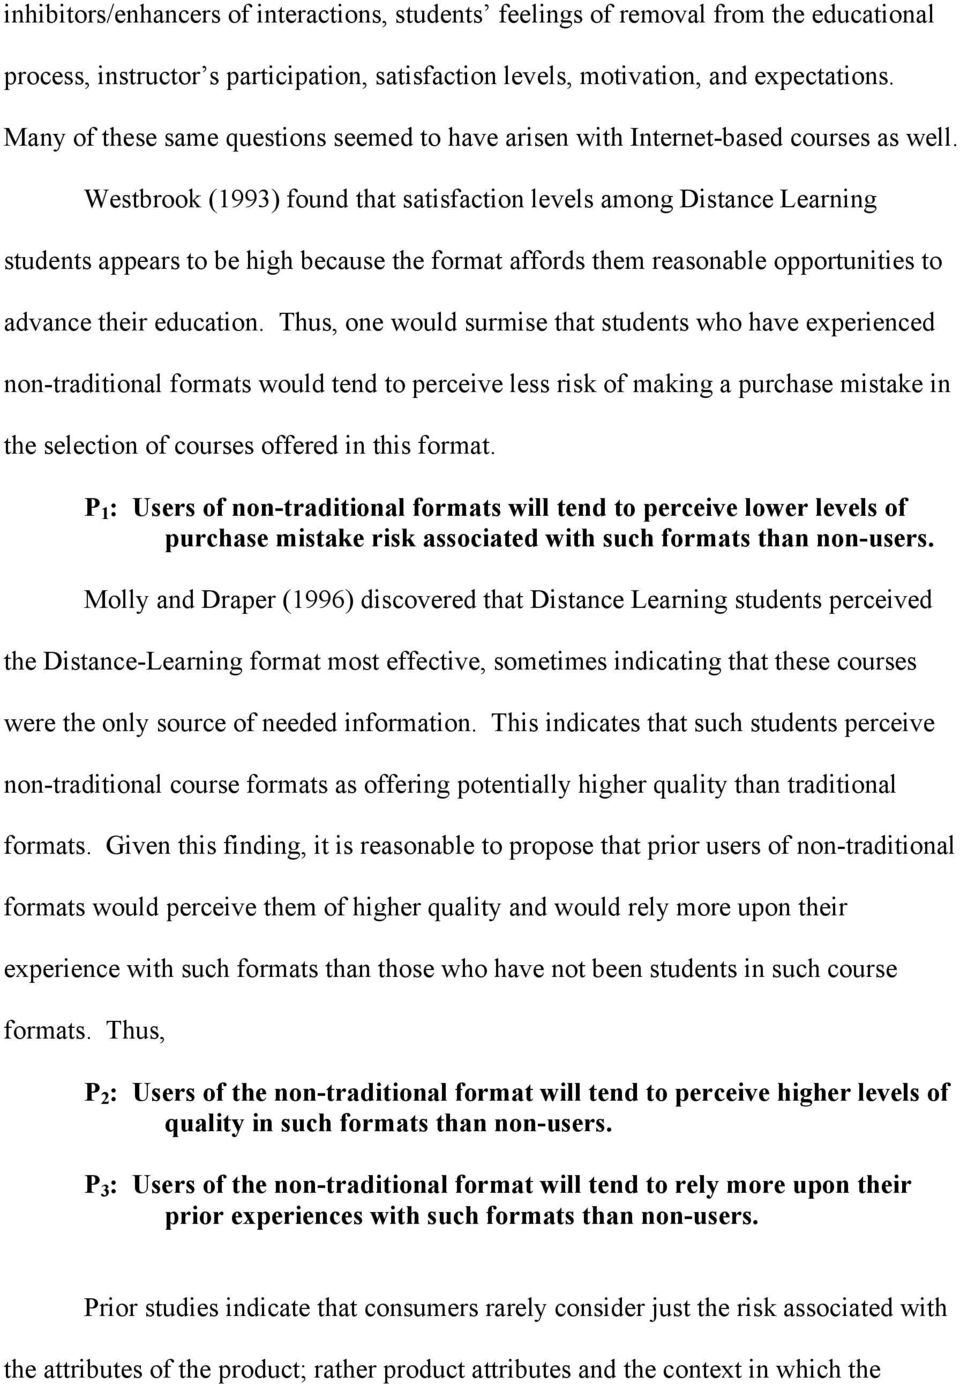 Westbrook (1993) found that satisfaction levels among Distance Learning students appears to be high because the format affords them reasonable opportunities to advance their education.